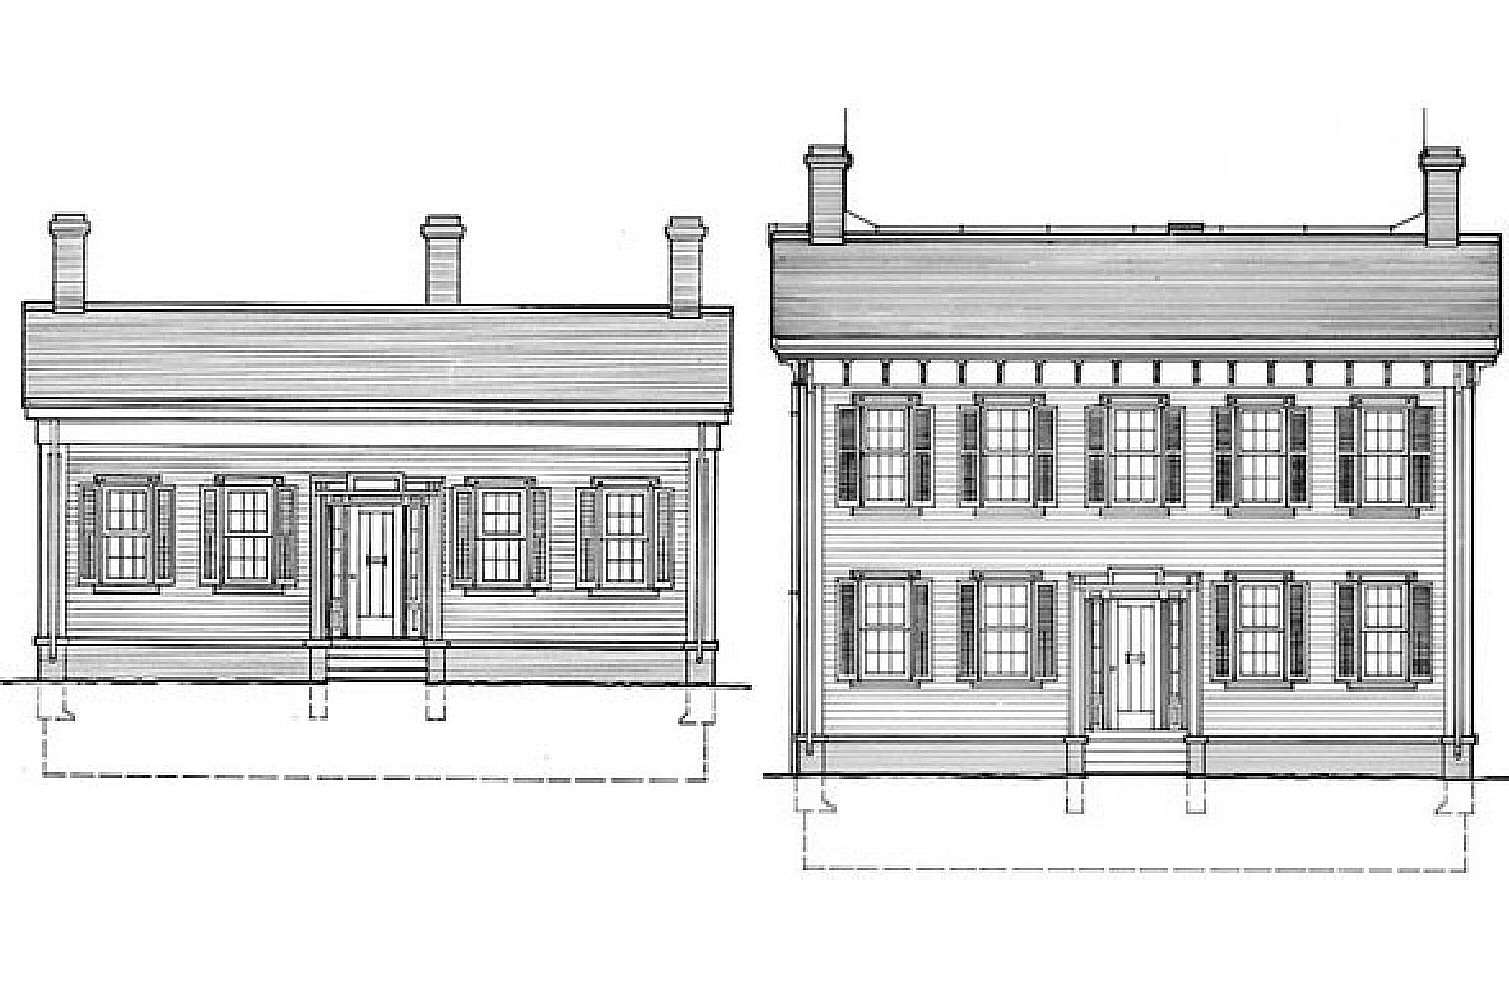 Elevation Drawings, The Lincoln Home From One-and-a-Half Story to Two Stories